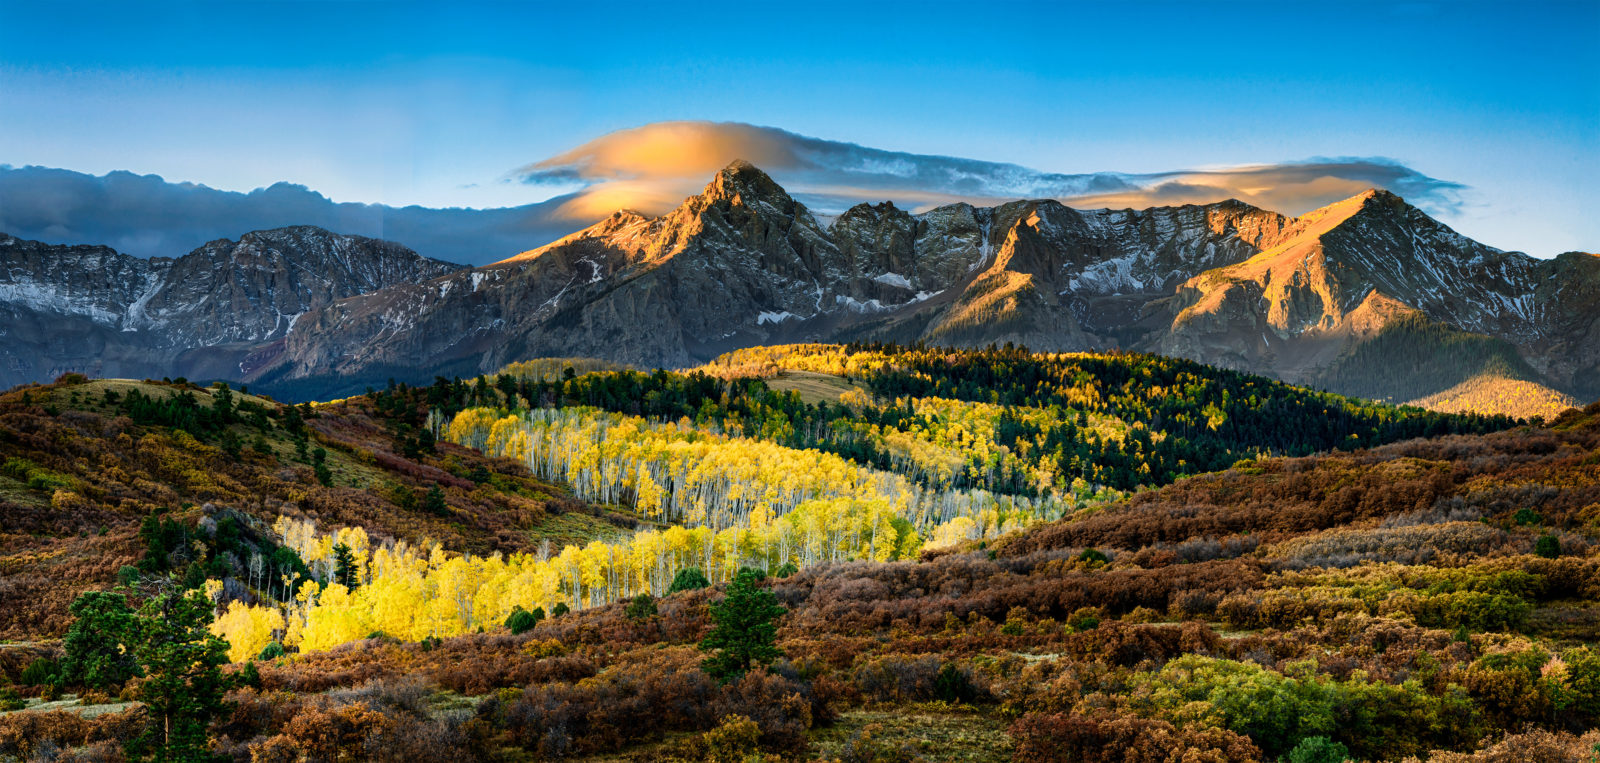 Sunrise over the Dallas Divide, Colorado